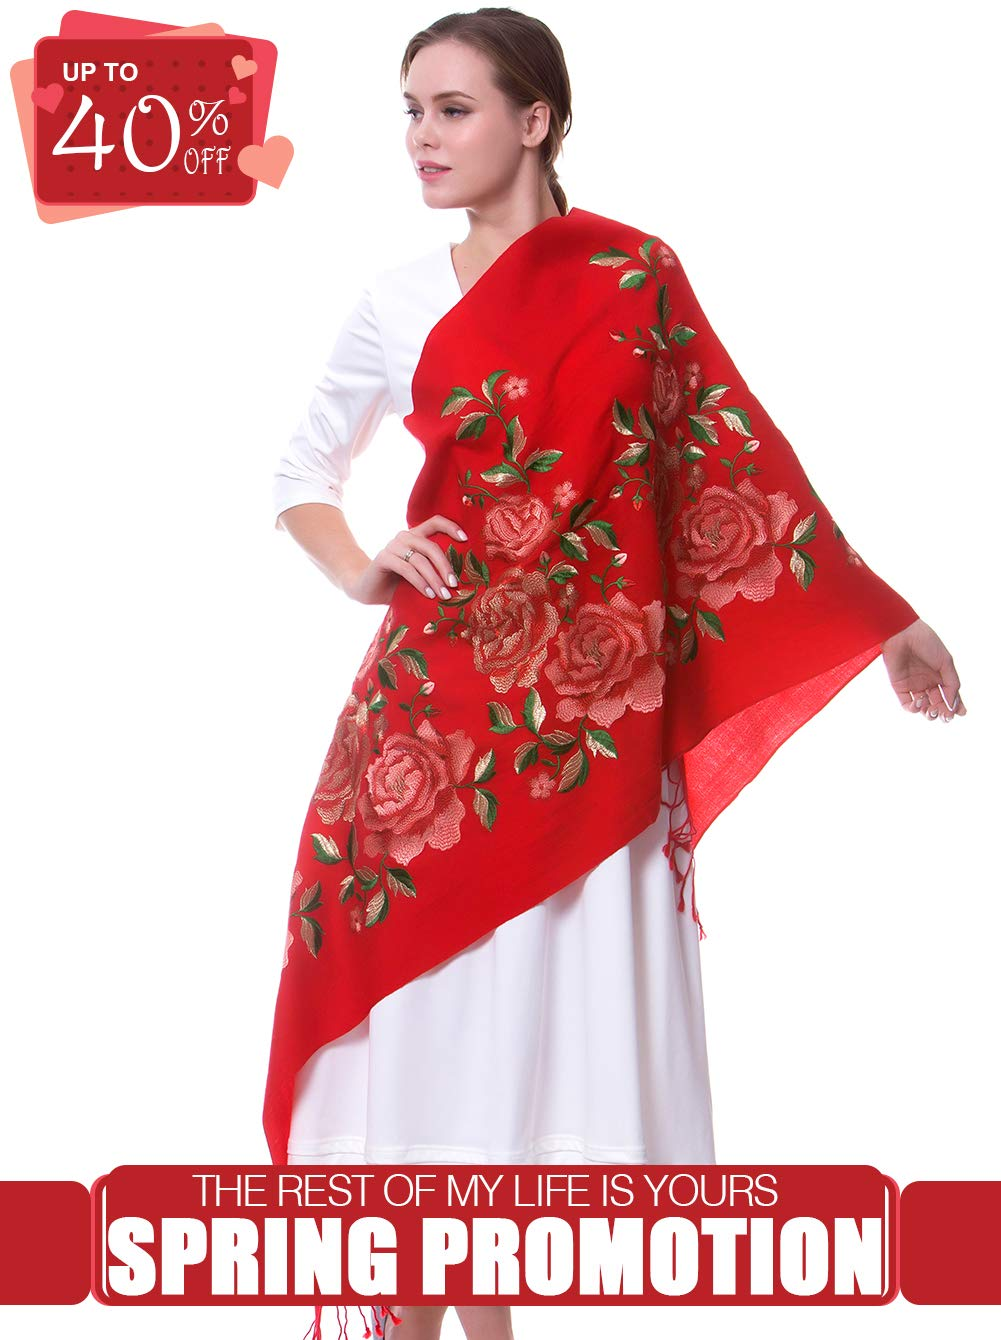 MORCOE Women's Top-class 100% Wool Delicate Embroidered Soft Long Floral Scarf Warm Wrap Party Wedding Shawl Gift … (Red)